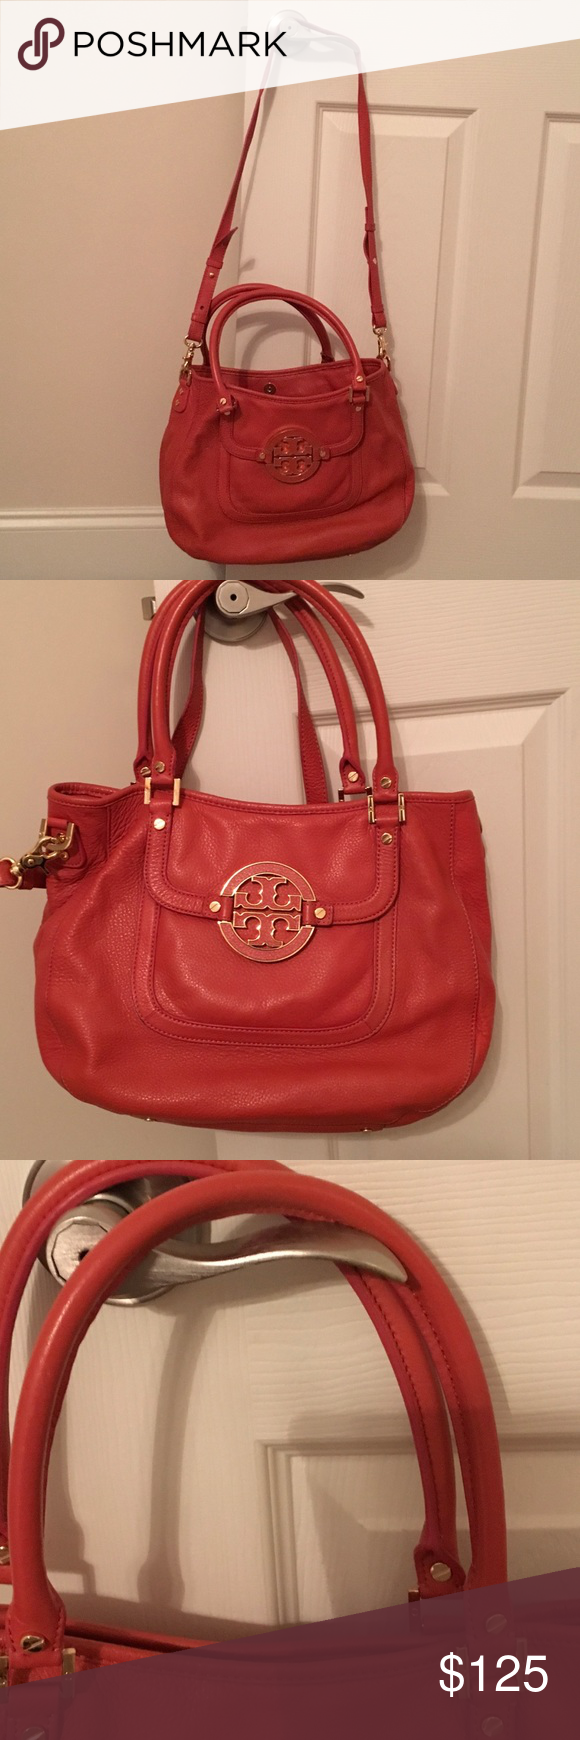 Tory Burch Orange leather Purse Tory Burch Leather Orange Purse with dust cover.  Excellent shape.  14 inches wide/10 inches long. With handles hangs 18 inches/with shoulder strap hangs 32 (shoulder strap is adjustable). Tory Burch Bags Shoulder Bags